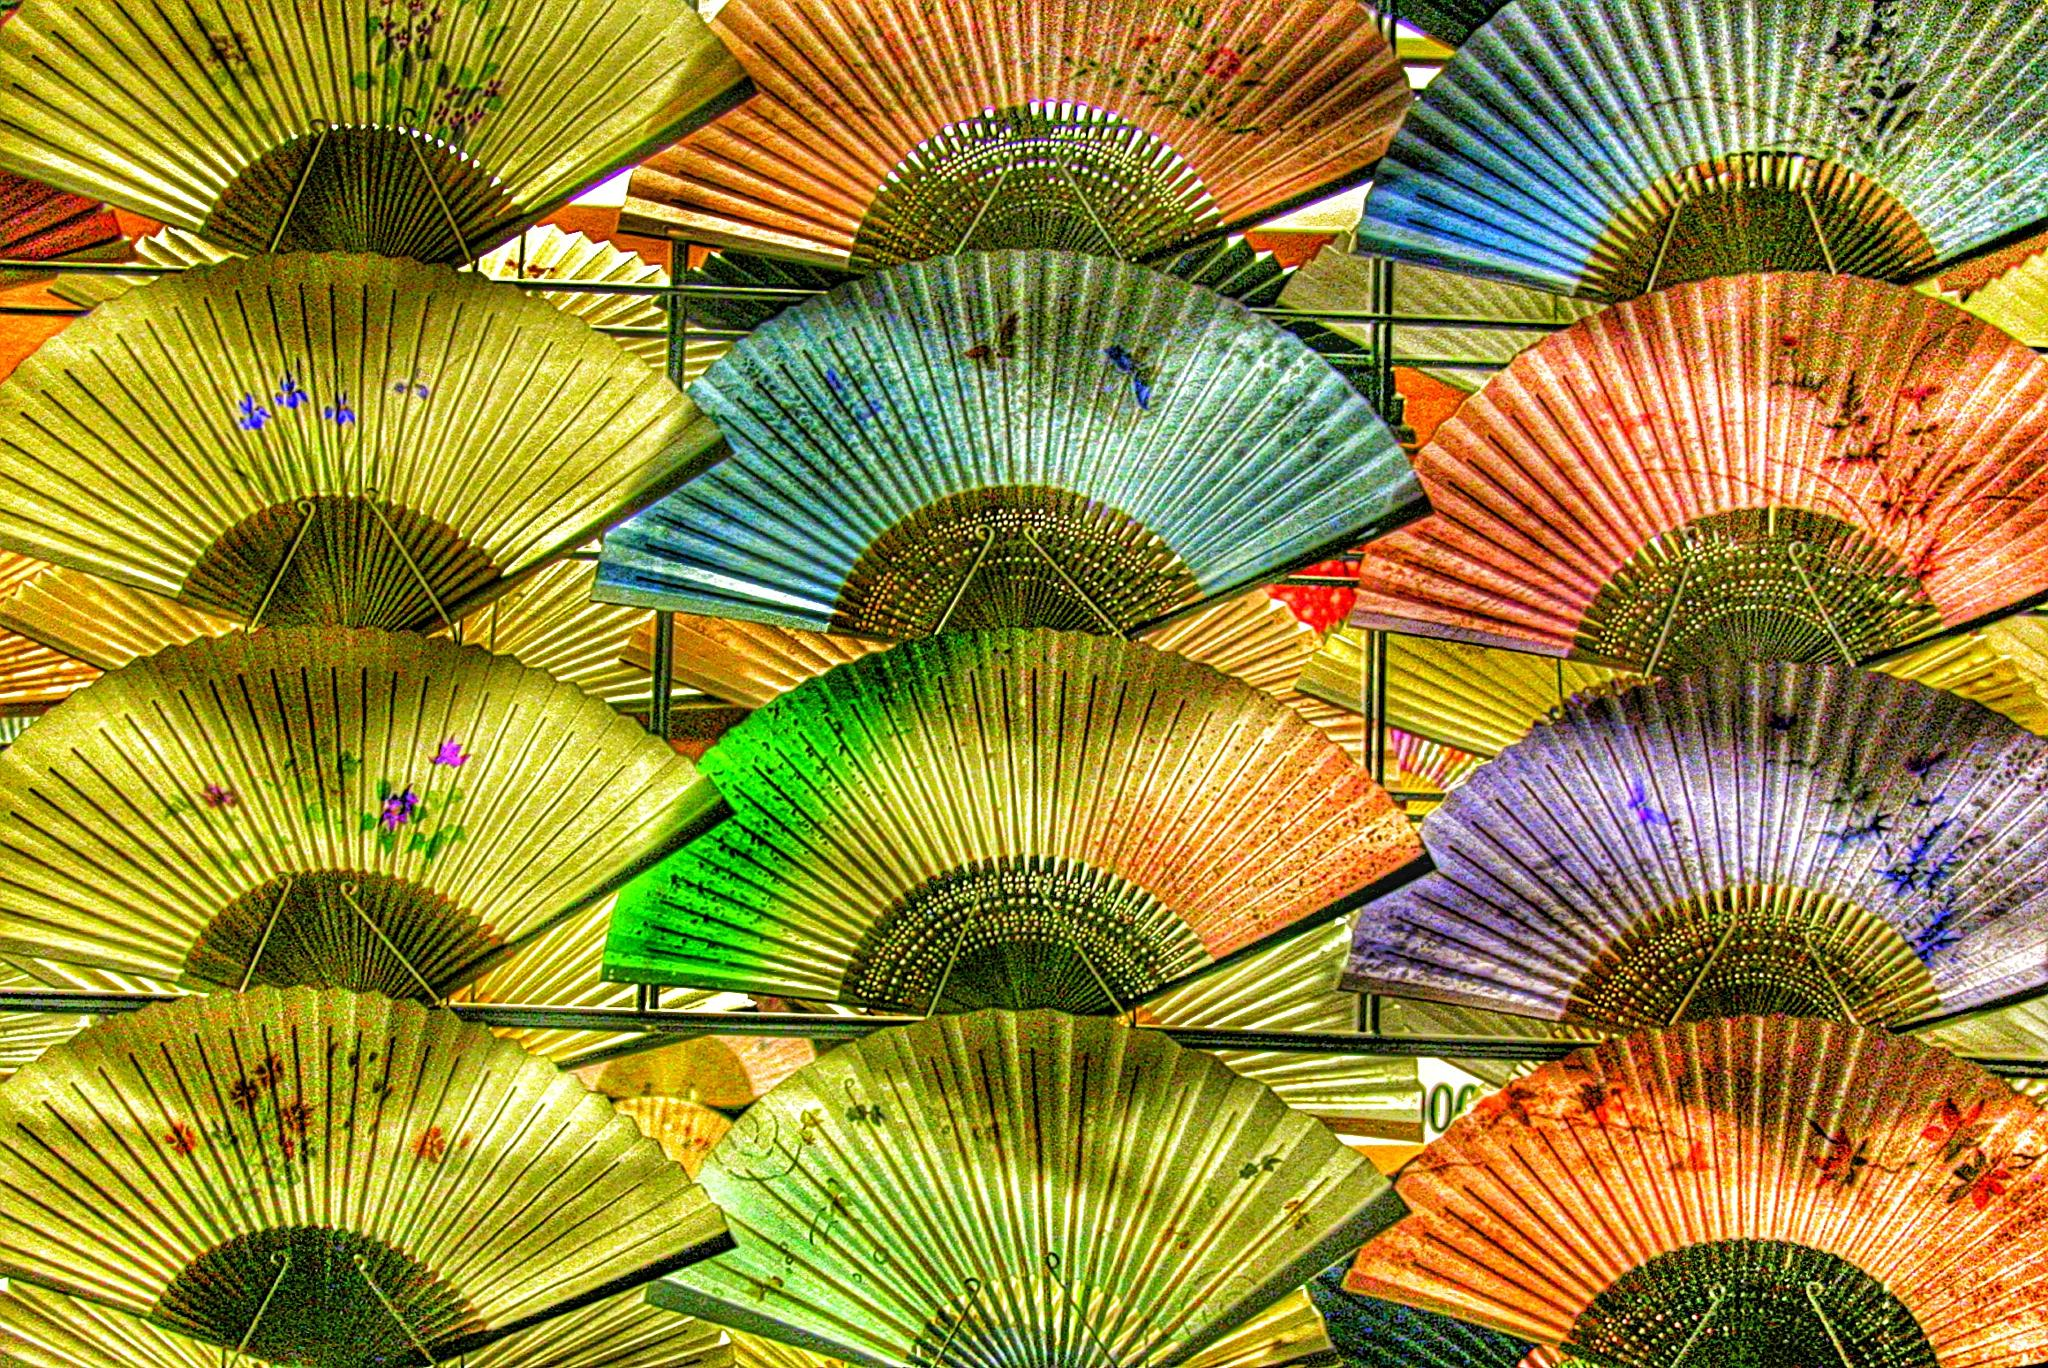 Japanese fans, Kyoto by 3dotstudio